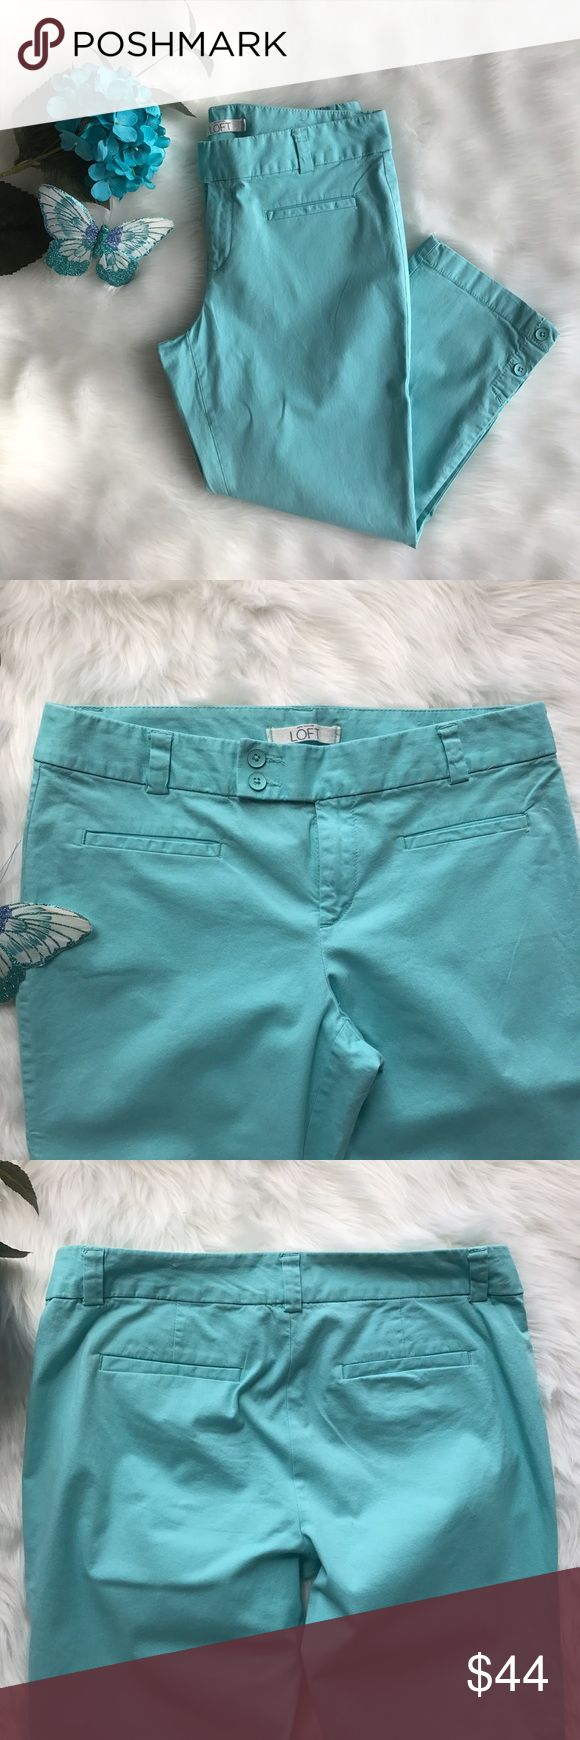 LOFT Marisa Cropped Chinos Great condition. Light signs of wear on the buttons. Size: 6. Color: Aqua/Turquoise.  Features: cropped, belt loops, buttons on bottom of leg, welt pockets. Closure: 1 jigger button, 2 front buttons, front zipper. Measurements: see pic #6. Note: 1 small stain on the back of the right leg (pic #5). Last picture is provided for fitting purposes. LOFT Pants Ankle & Cropped